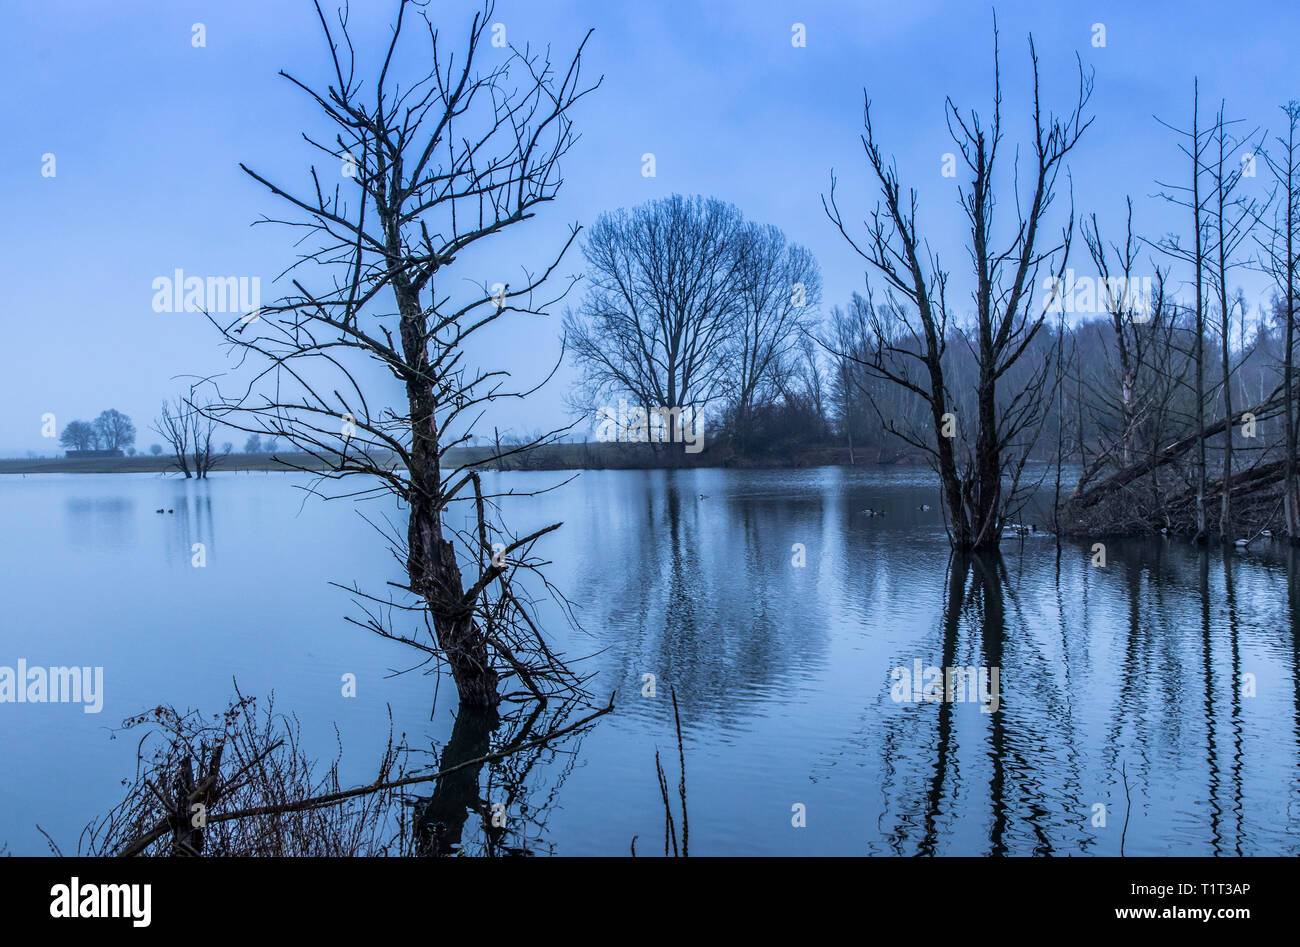 The nature reserve Bislicher Insel, near Xanten on the Lower Rhine, Germany Stock Photo